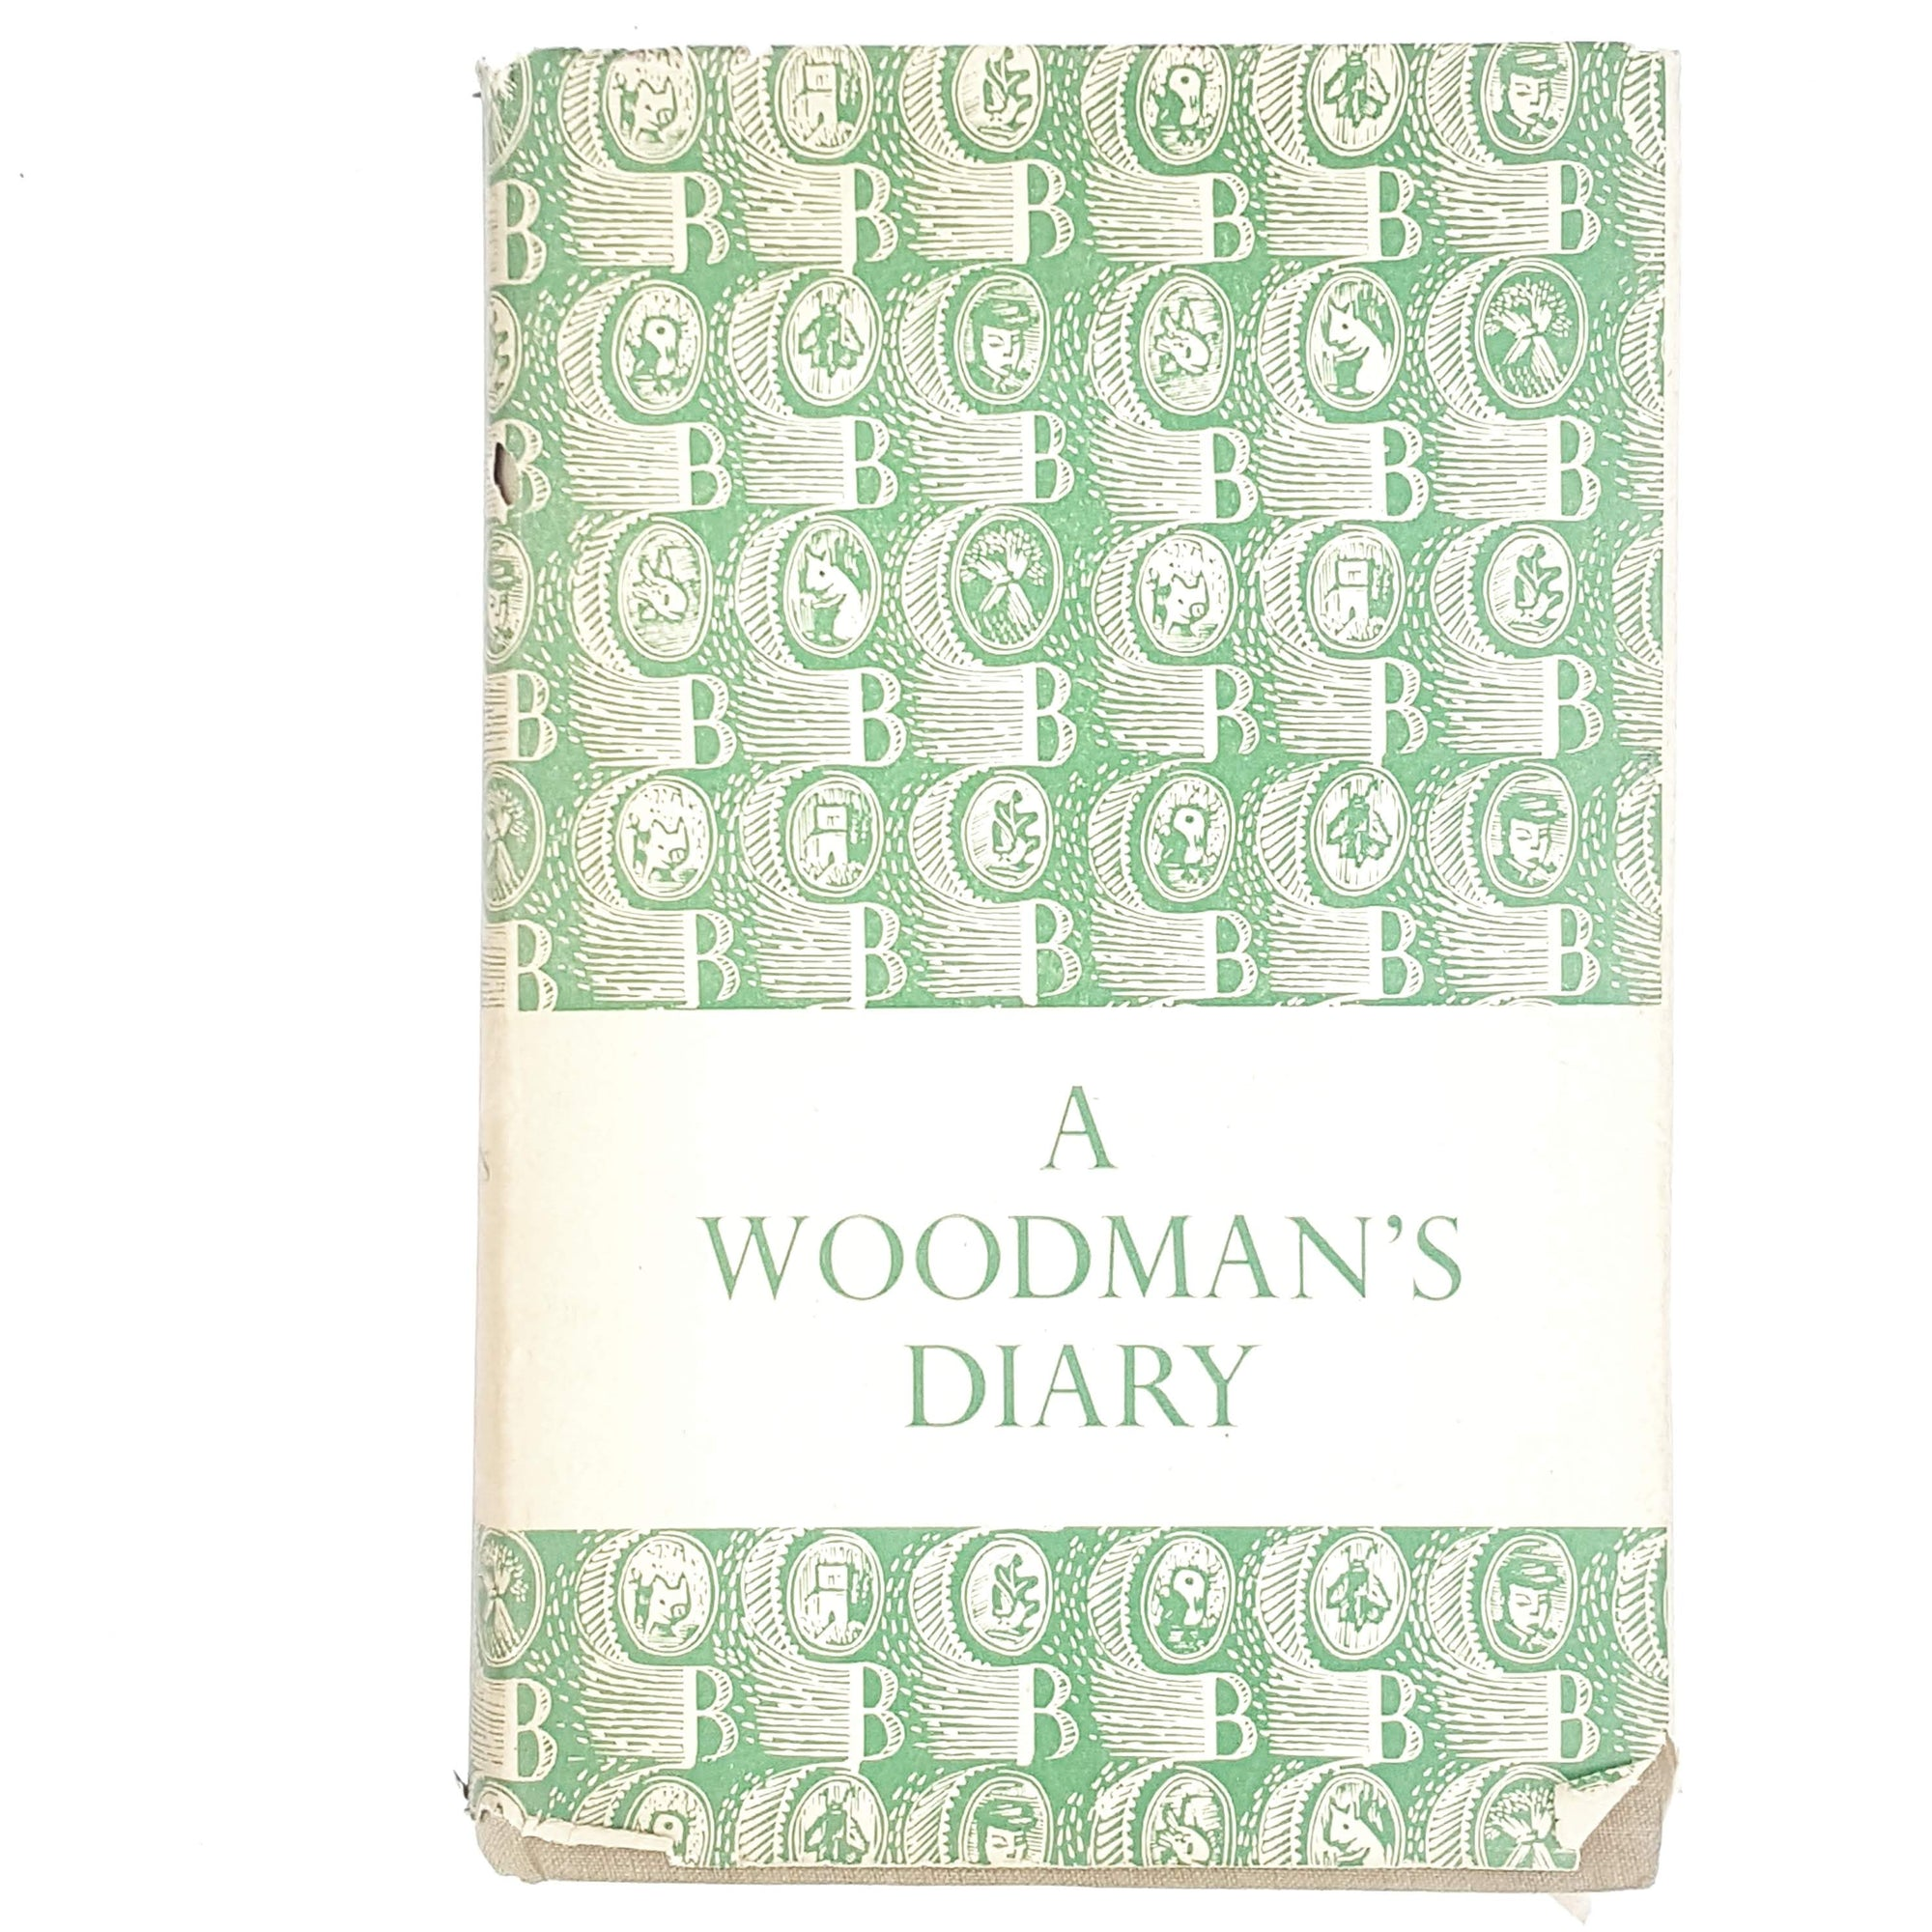 A Woodman's Diary by J. D. U. Ward 1954